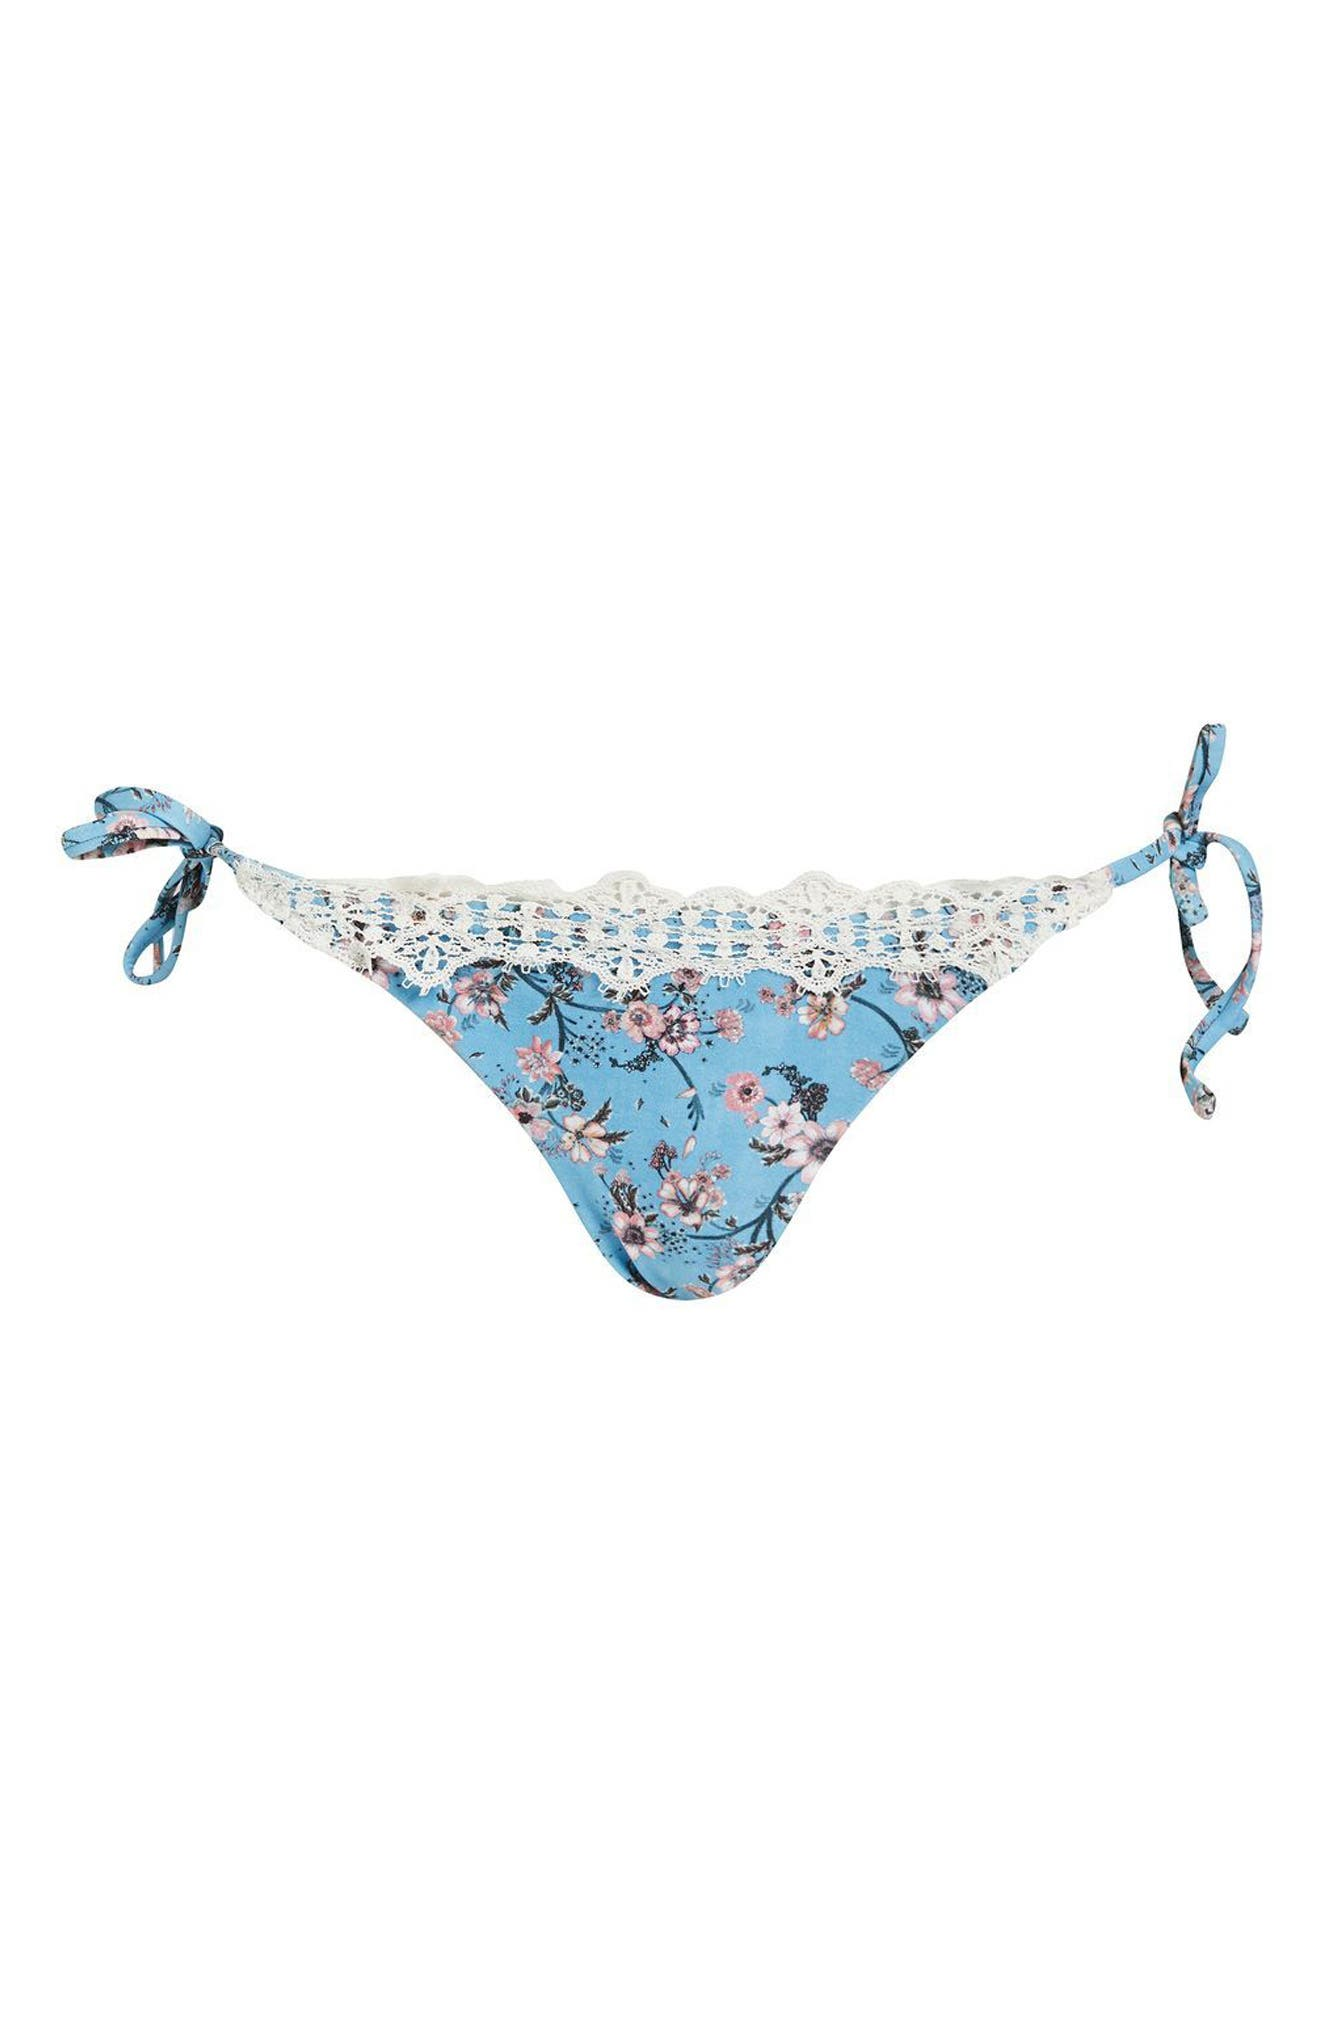 Alternate Image 1 Selected - Topshop Ditsy Lace Trim Tie Side Bikini Bottoms